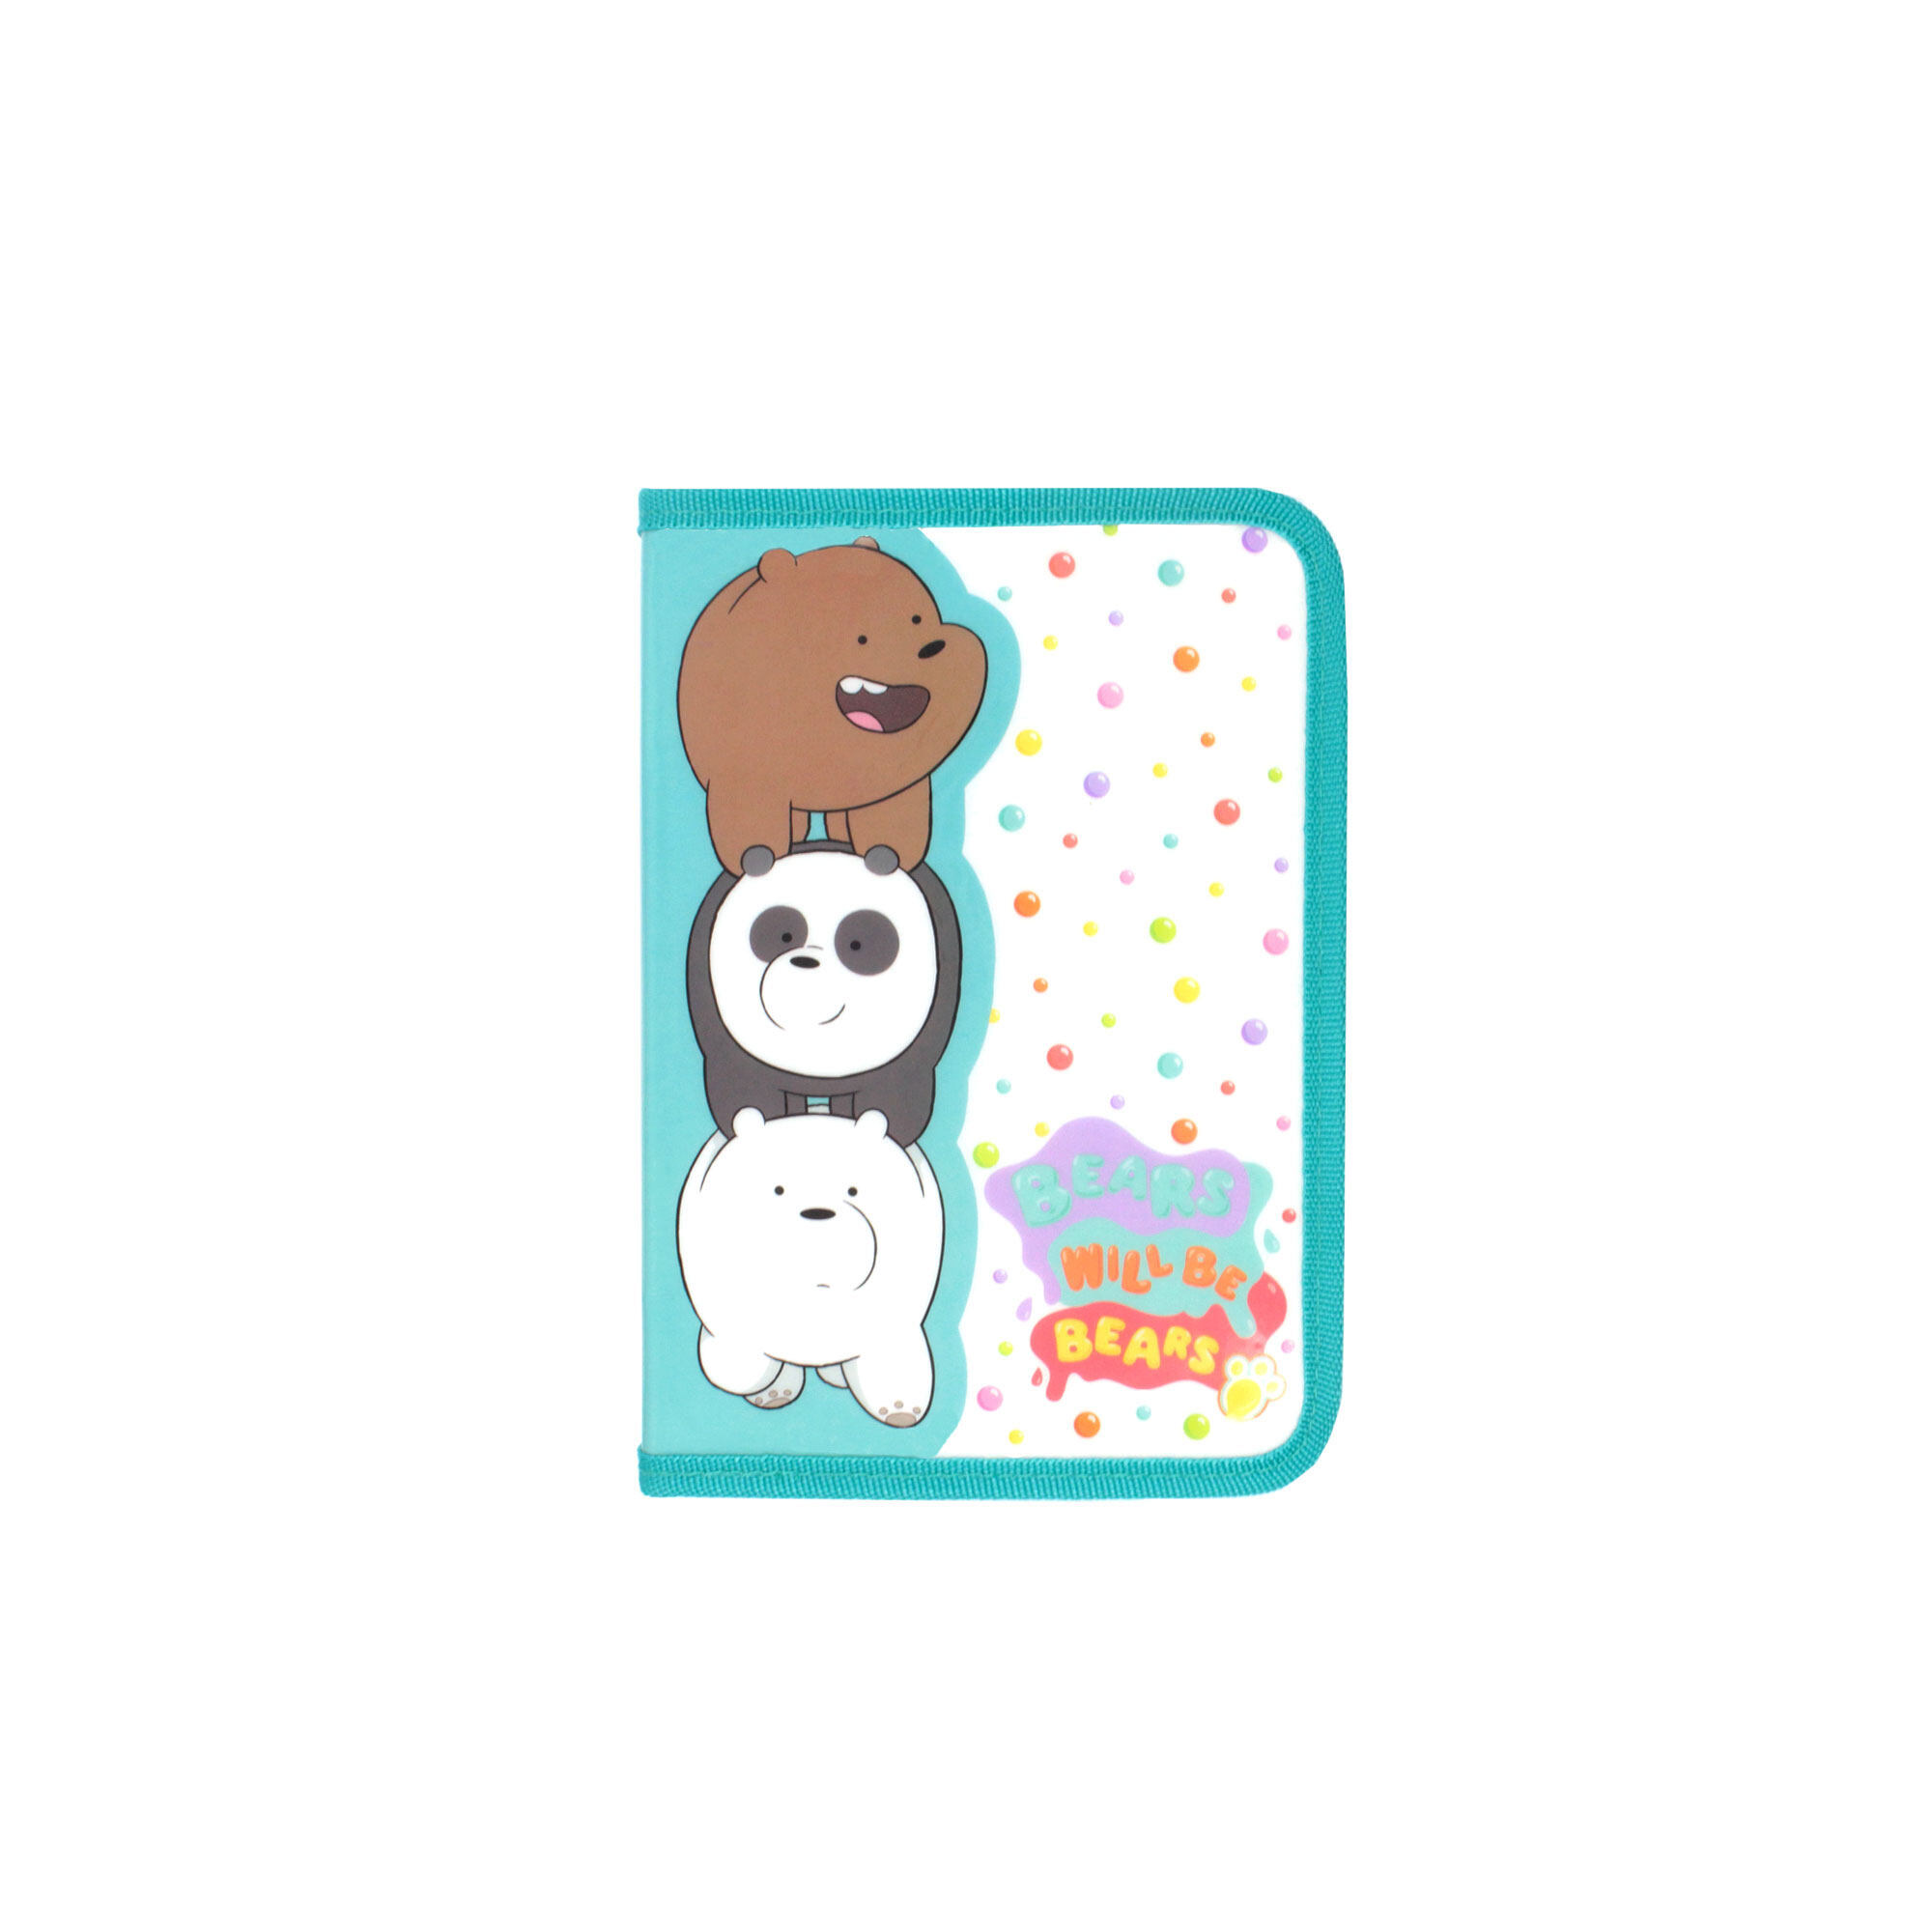 We Bare Bears 2 Folded Organizer Set  -Turquoise & White Colour